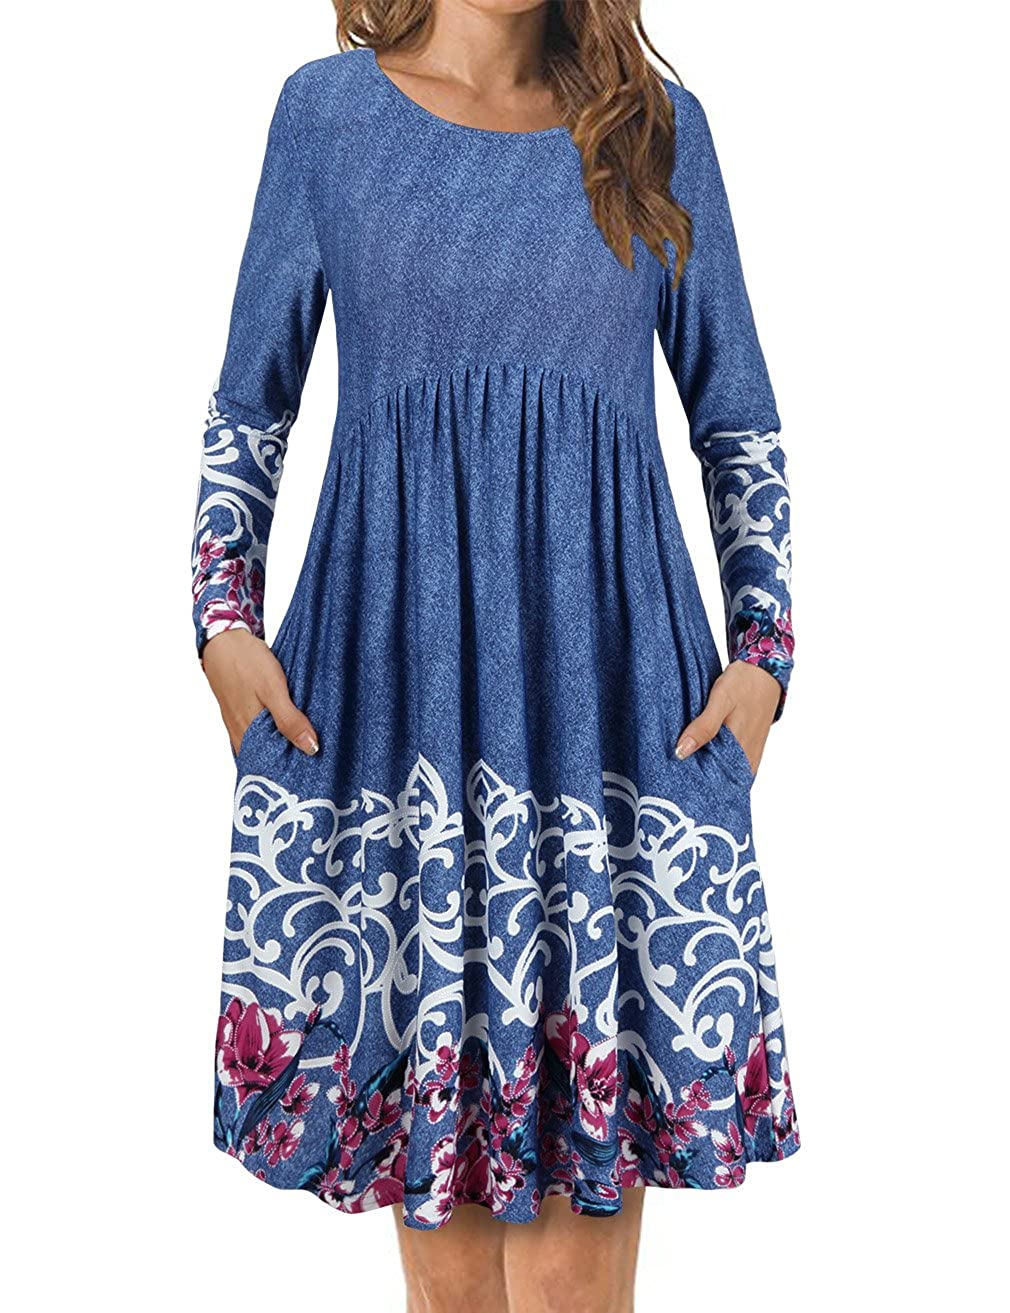 bluee FANSIC Women's T Shirt Dress with Pockets,Long Sleeve Floral Pleated A Line Swing Dress